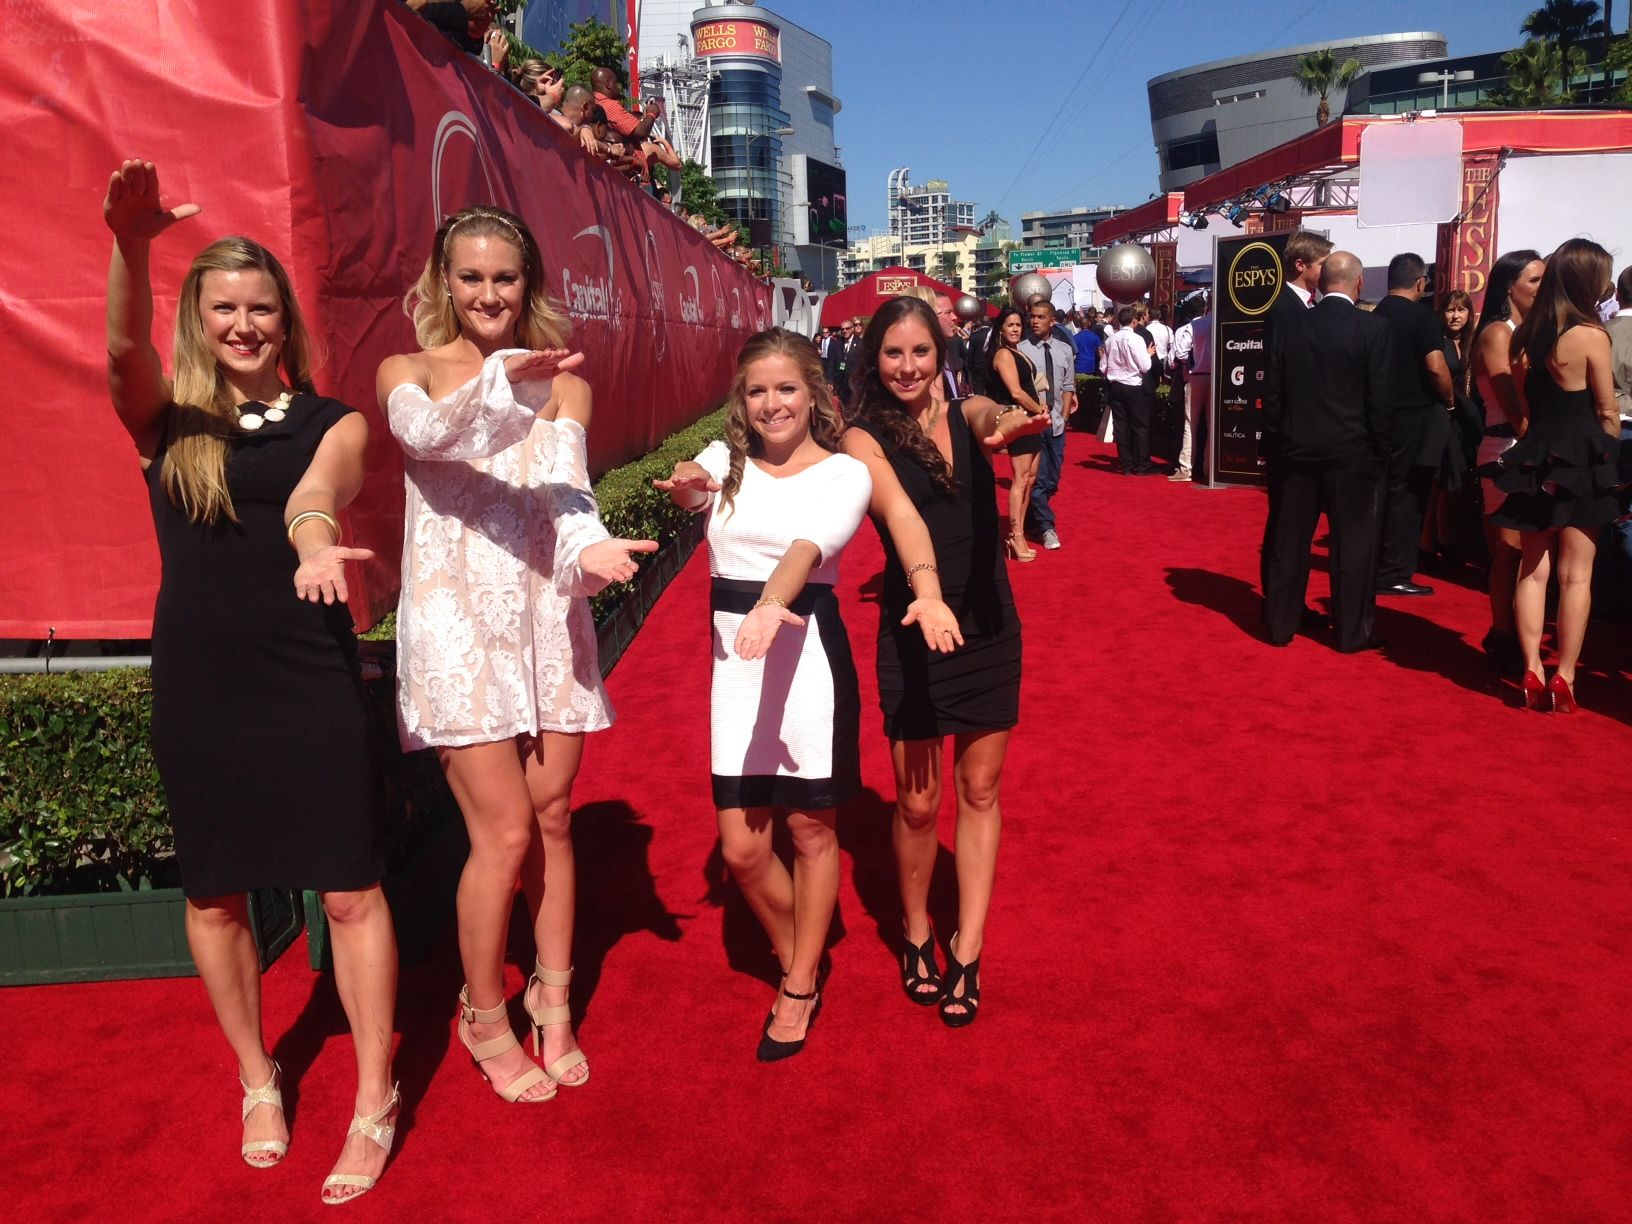 Gator Chomp at ESPYs